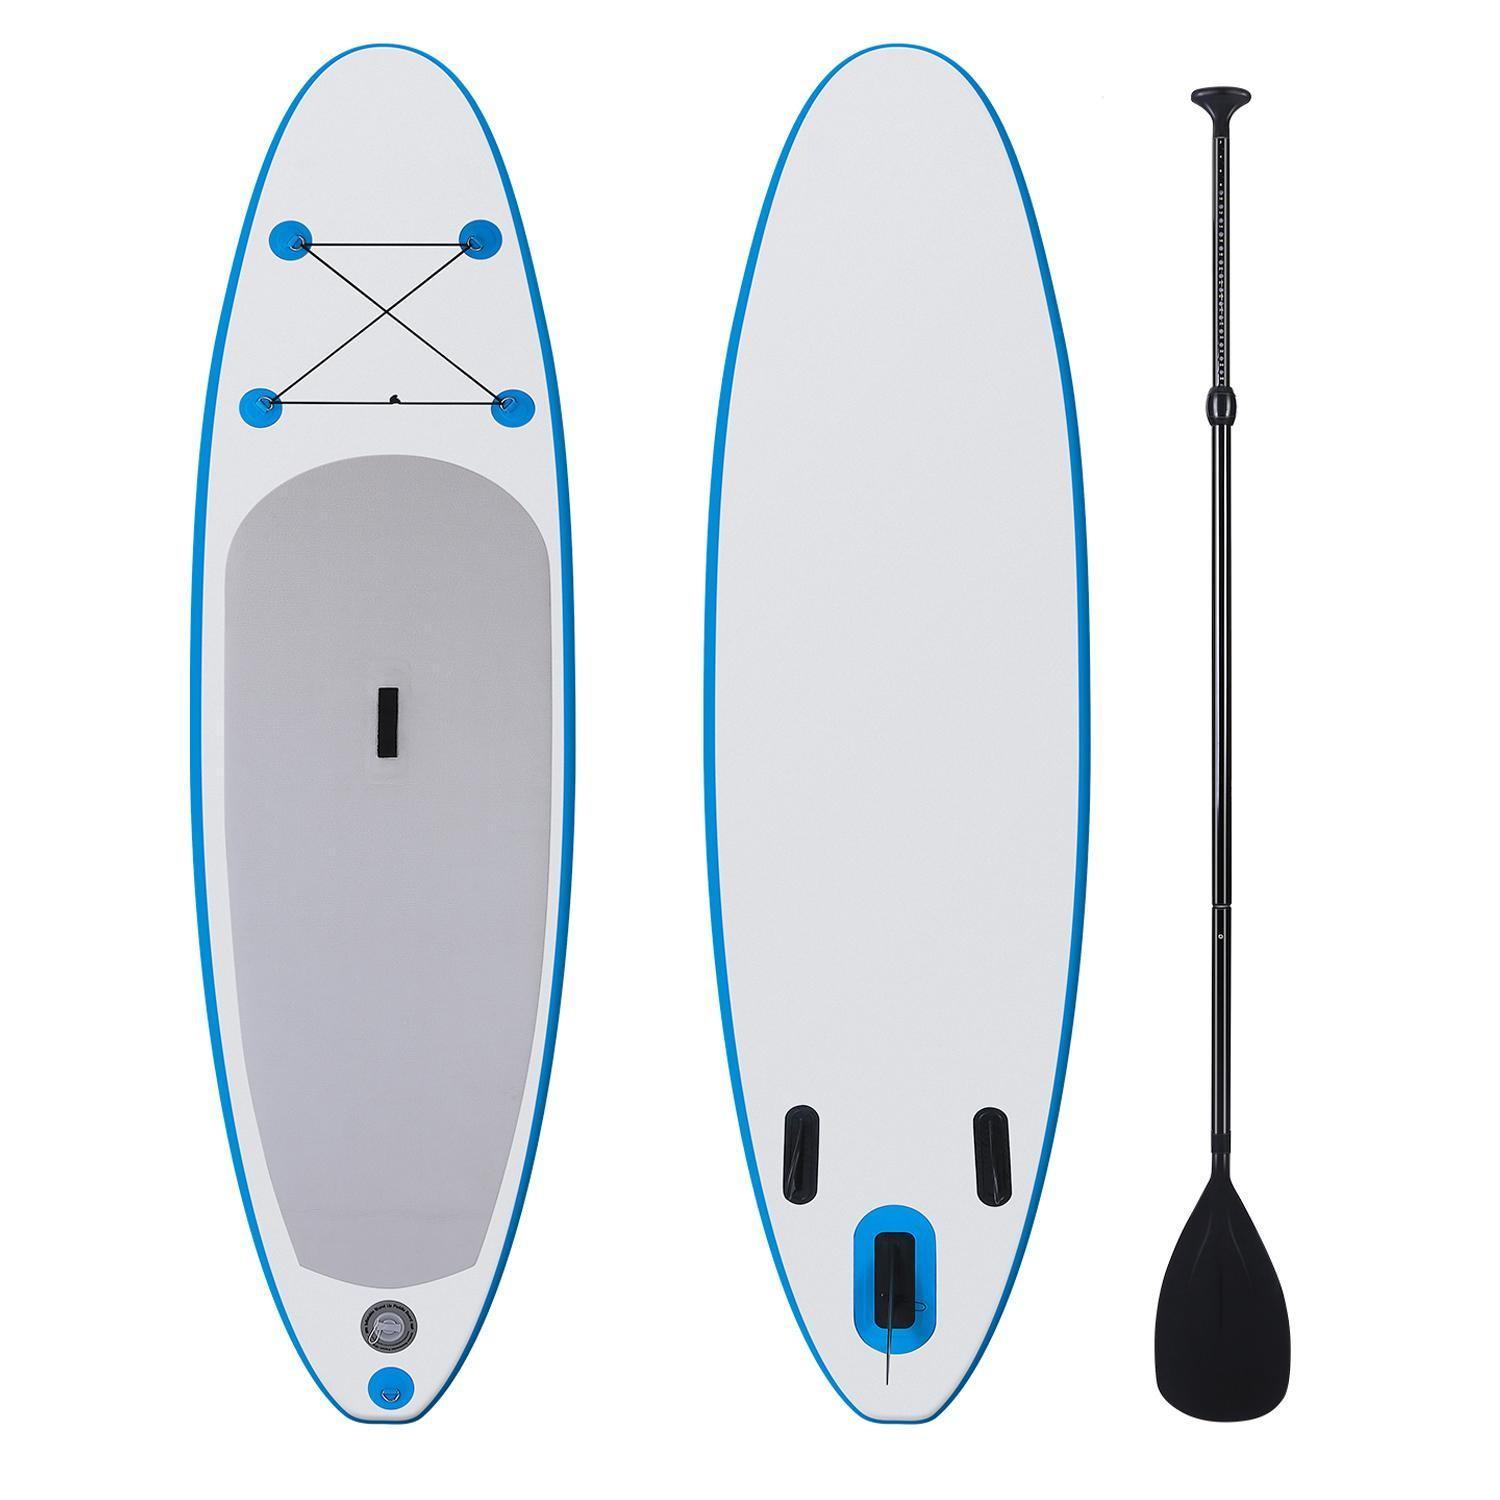 Hascon 10ft Inflatable Stand Up Paddle Boards Sup w/ Adjustable Paddle, Travel Backpack, Pump Tower